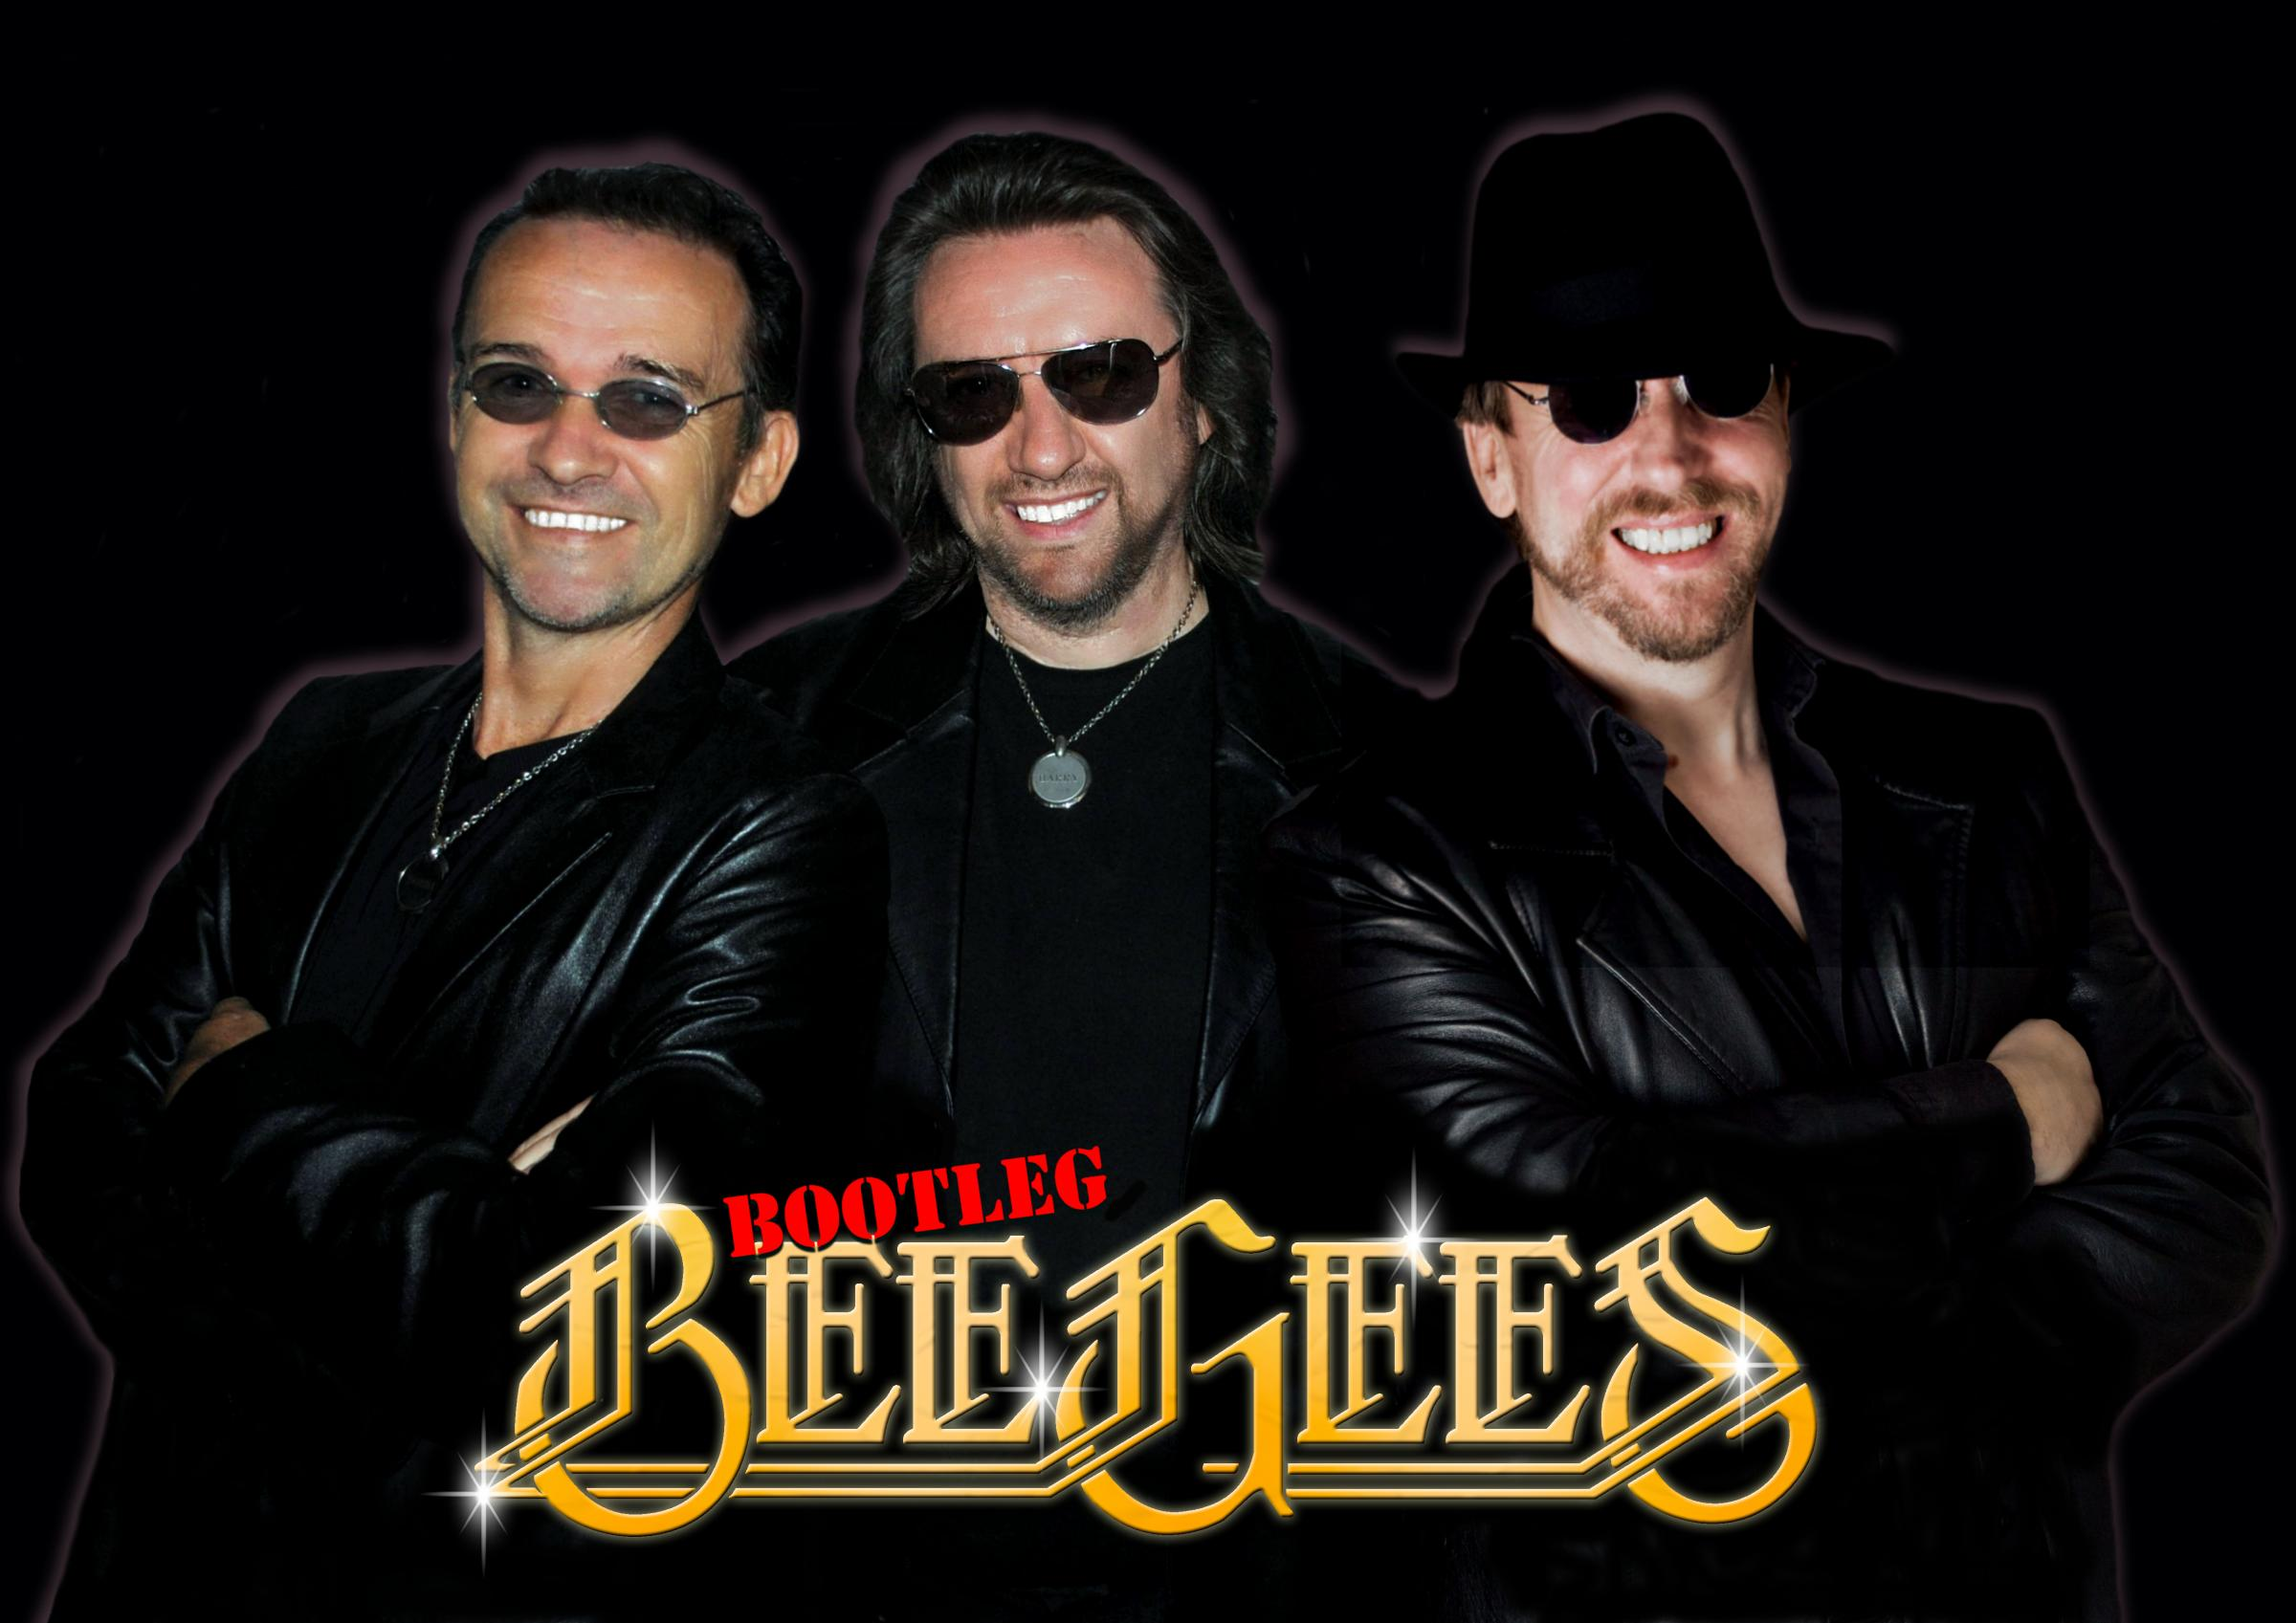 Bootleg Bee Gees Live